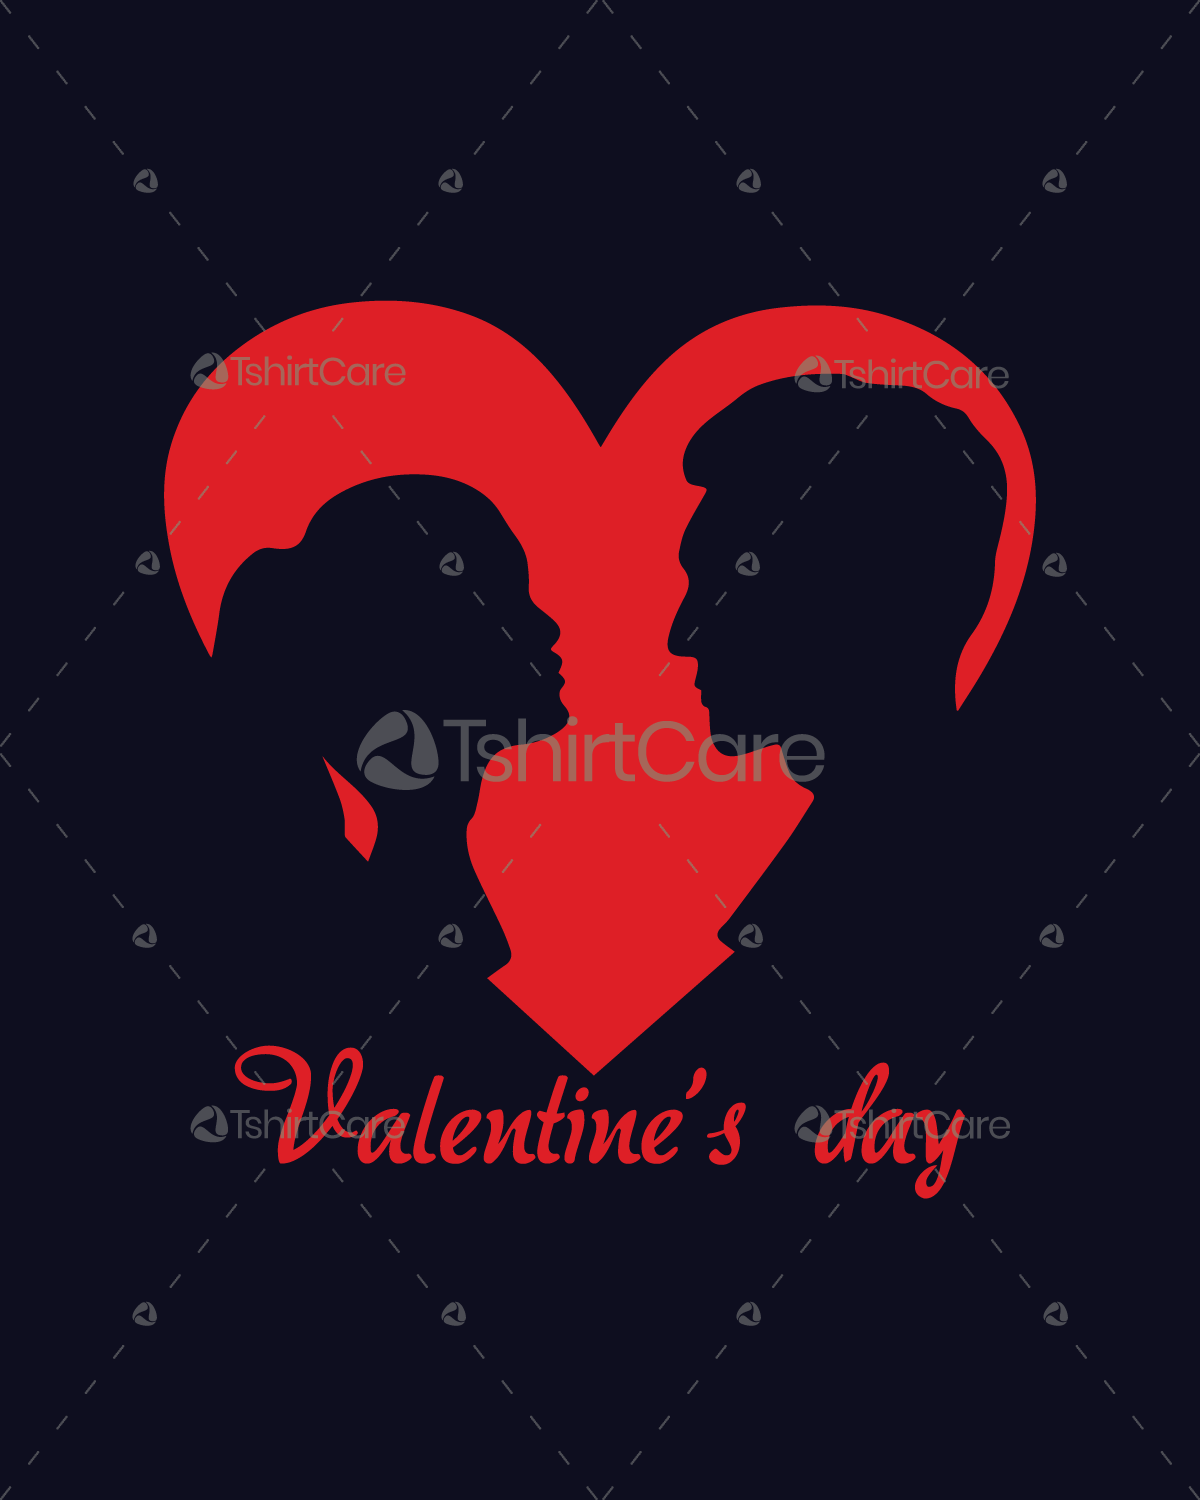 Valentines Day Heart Love Couple T Shirt Design For Event Boys